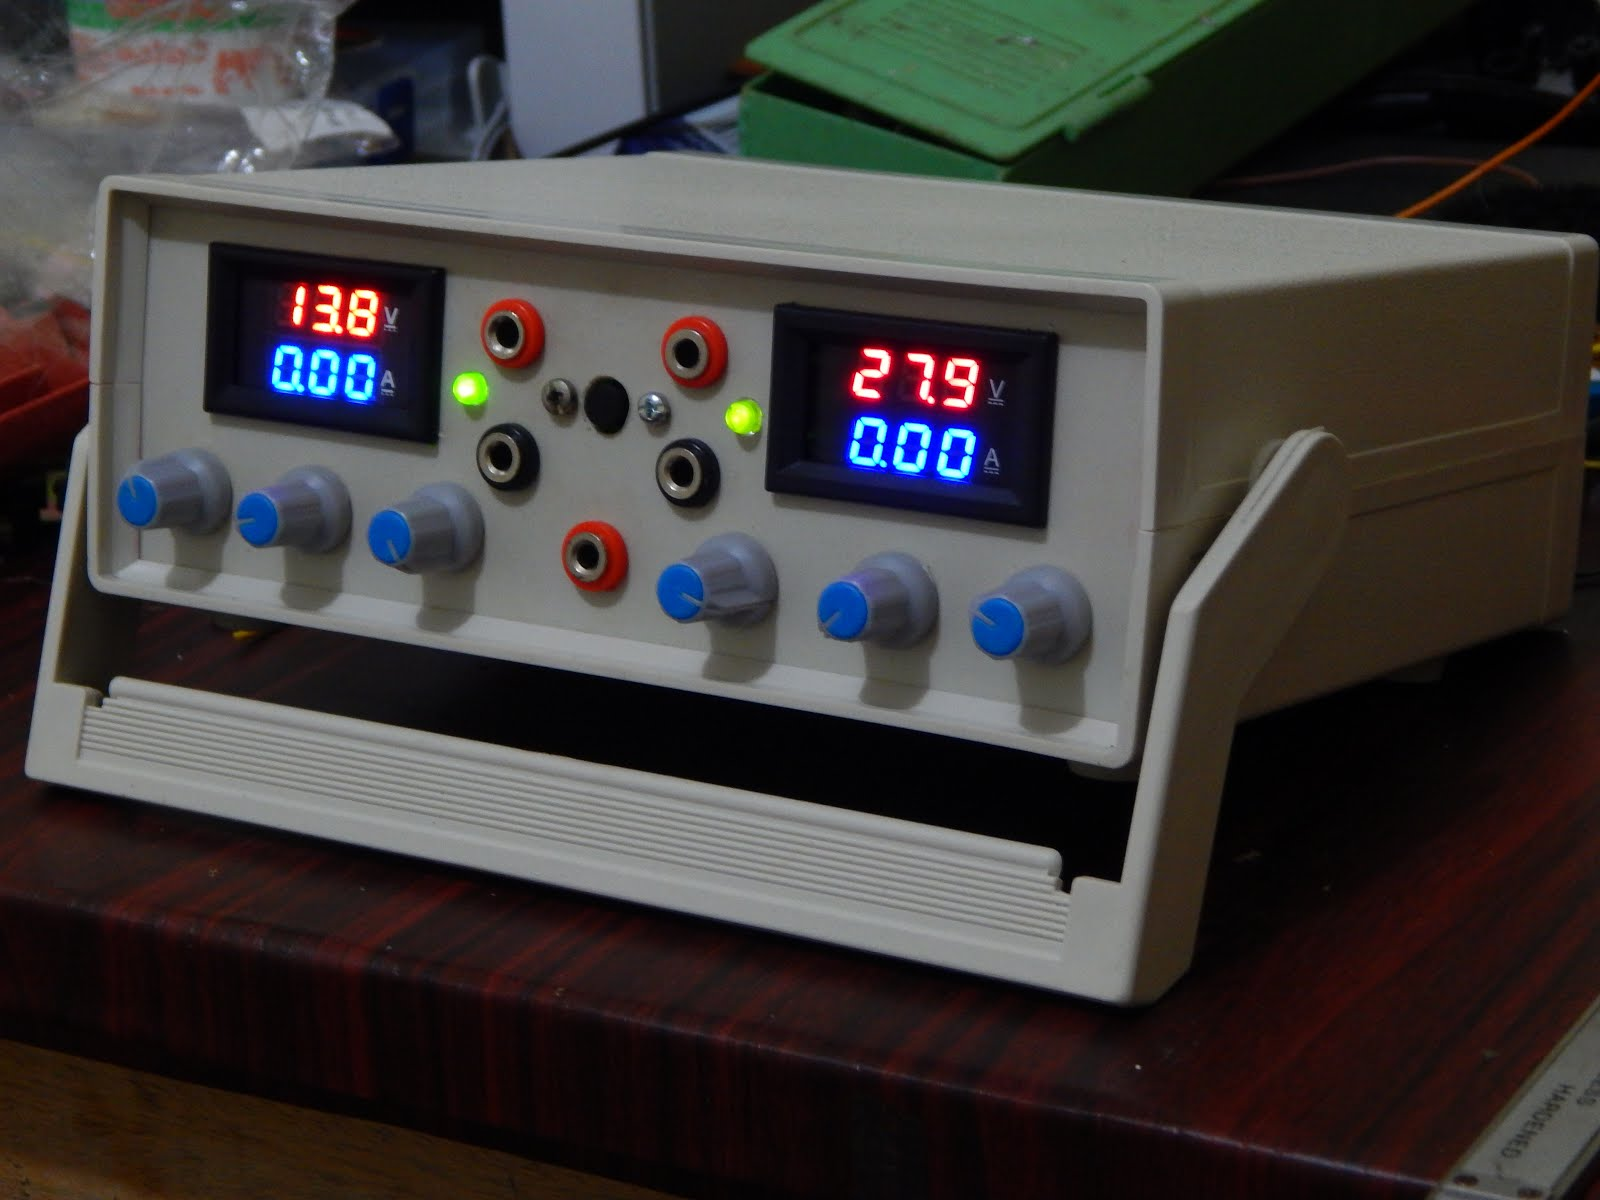 Lab Bench Power Supply Voltage Regulator With Current Limiter And Circuit Simple Variable Doesnt It Looks Cool Still The Front Panel Is Not Printed For Identification Of Controllers There Are 2 Channels On Instrument